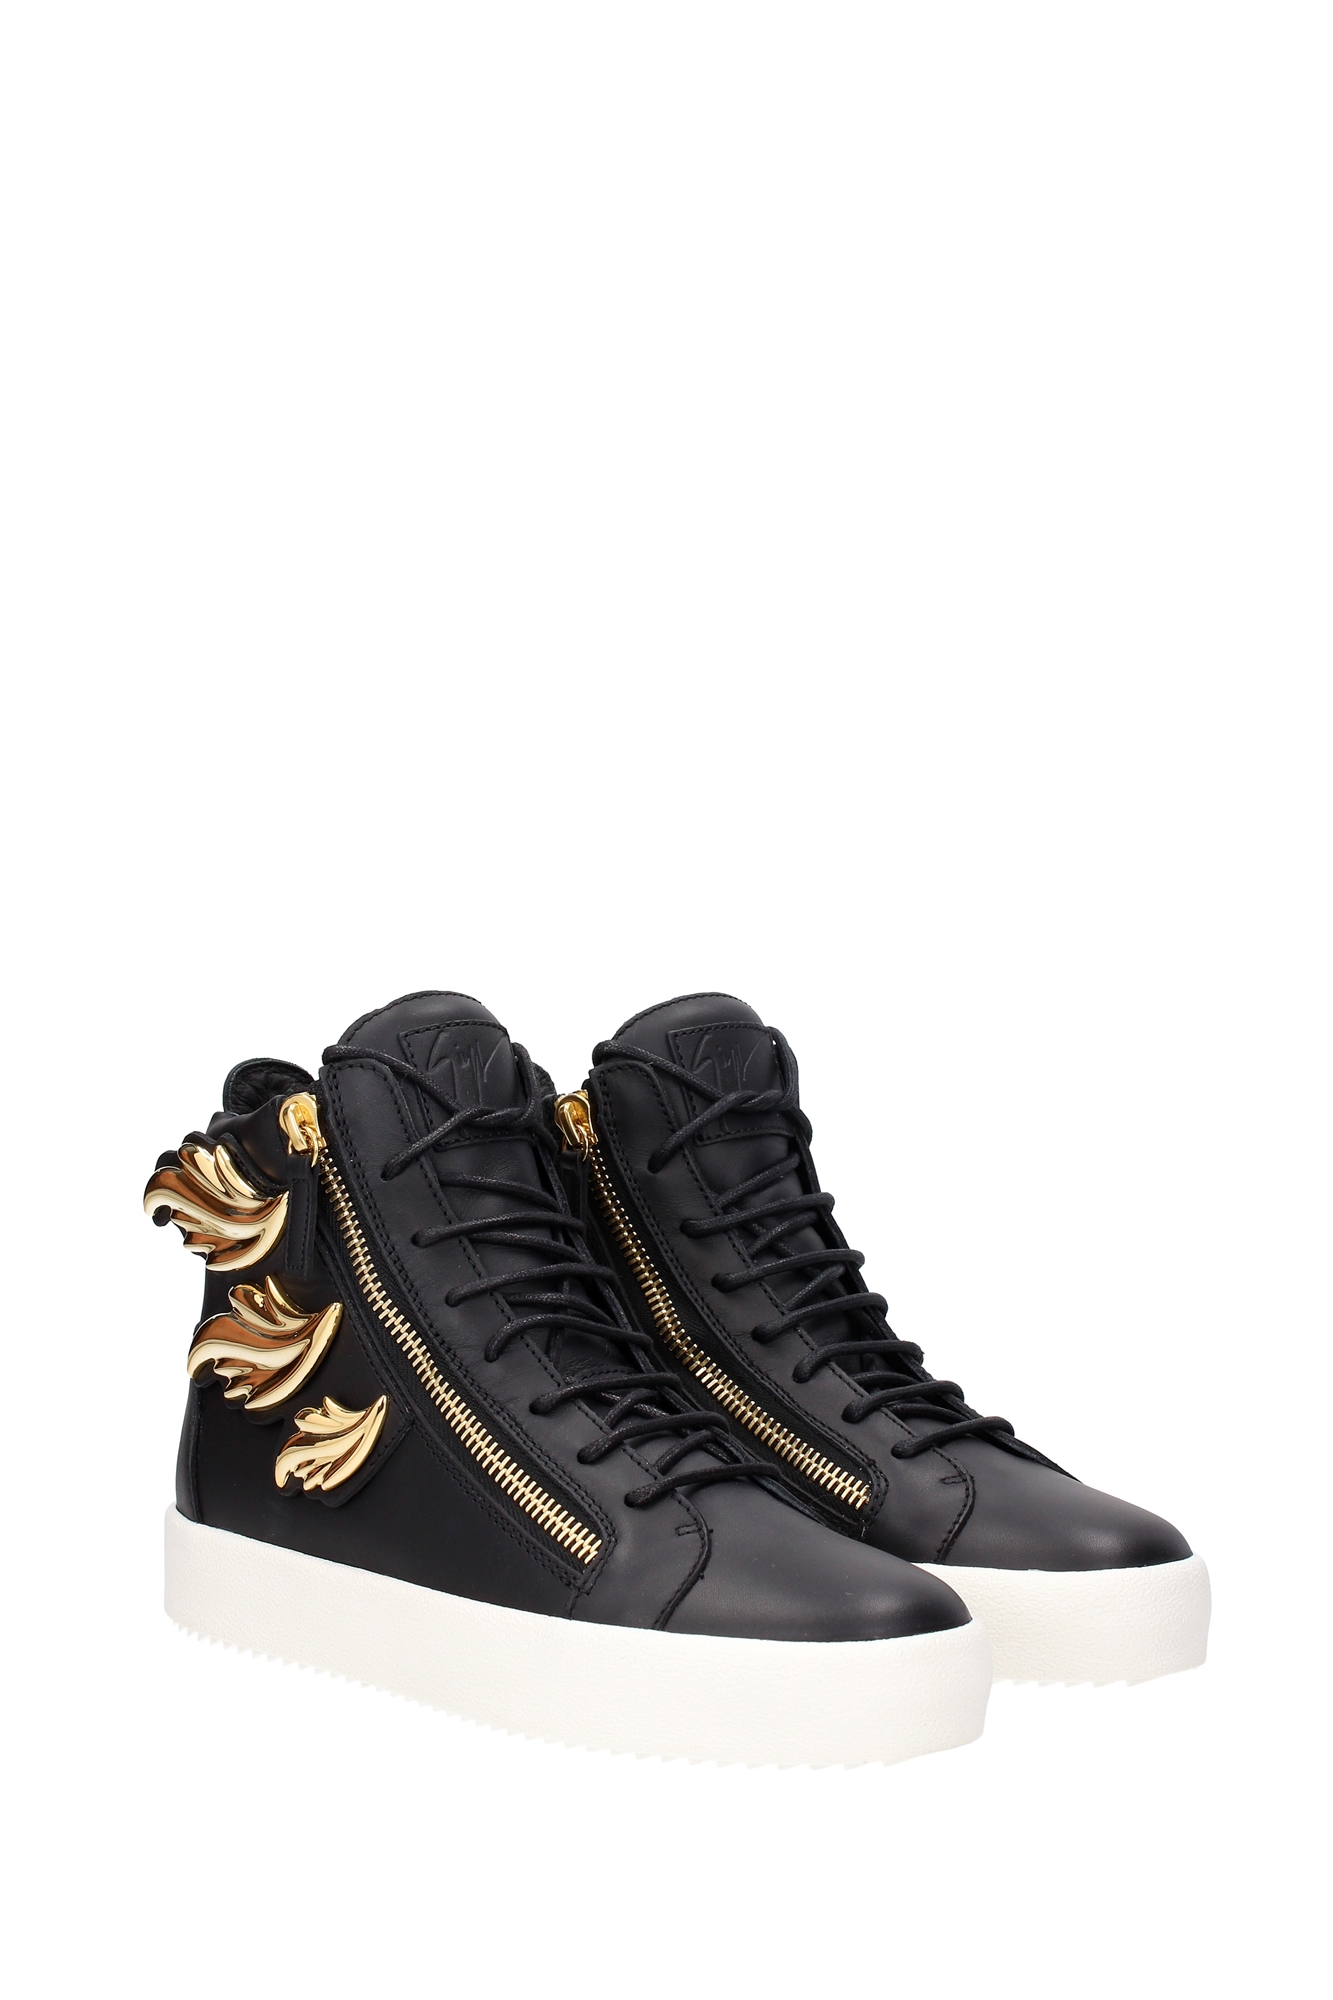 sneakers giuseppe zanotti herren leder schwarz rm6084maylondnero ebay. Black Bedroom Furniture Sets. Home Design Ideas